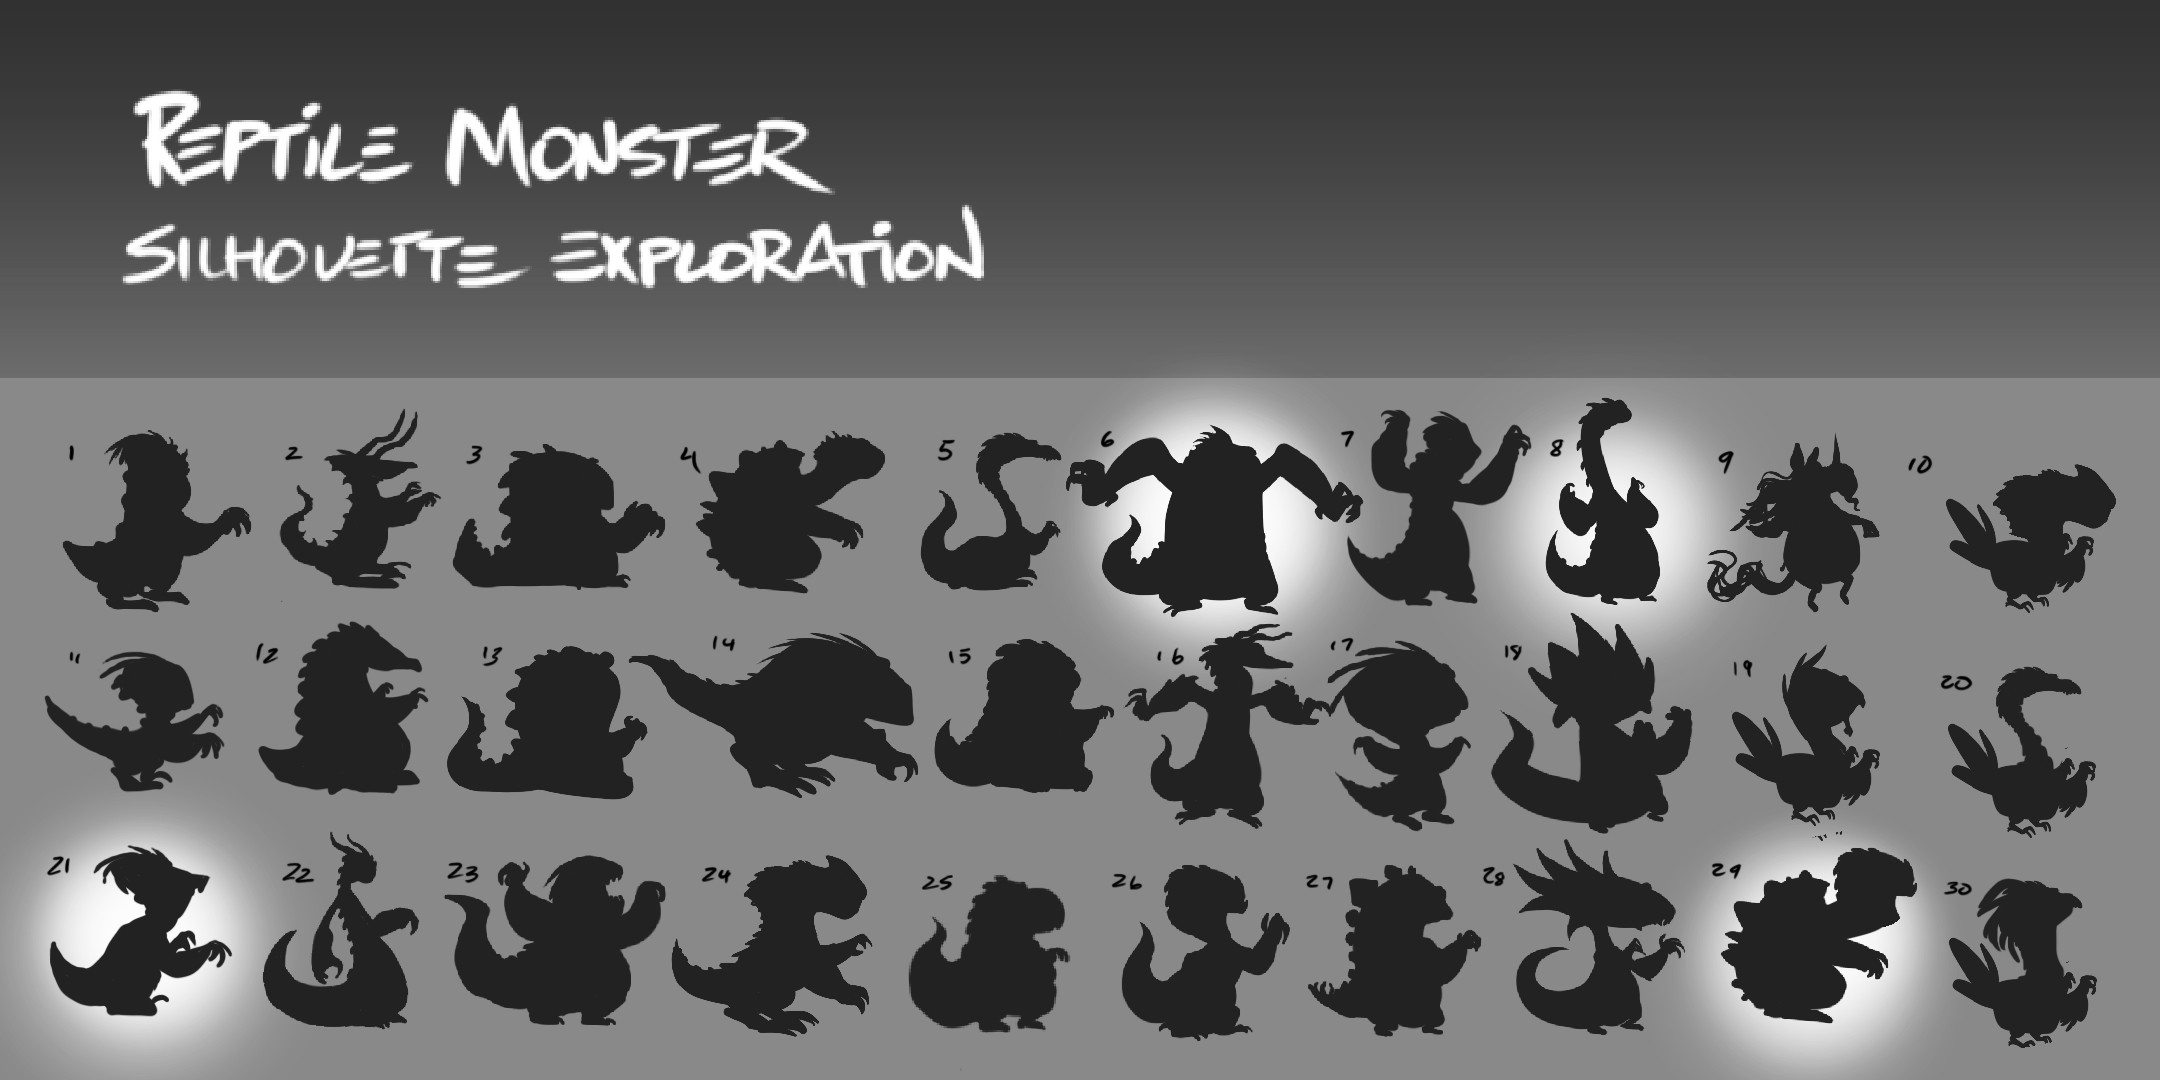 Settling on the reptile creature idea, silhouette explorations begin.